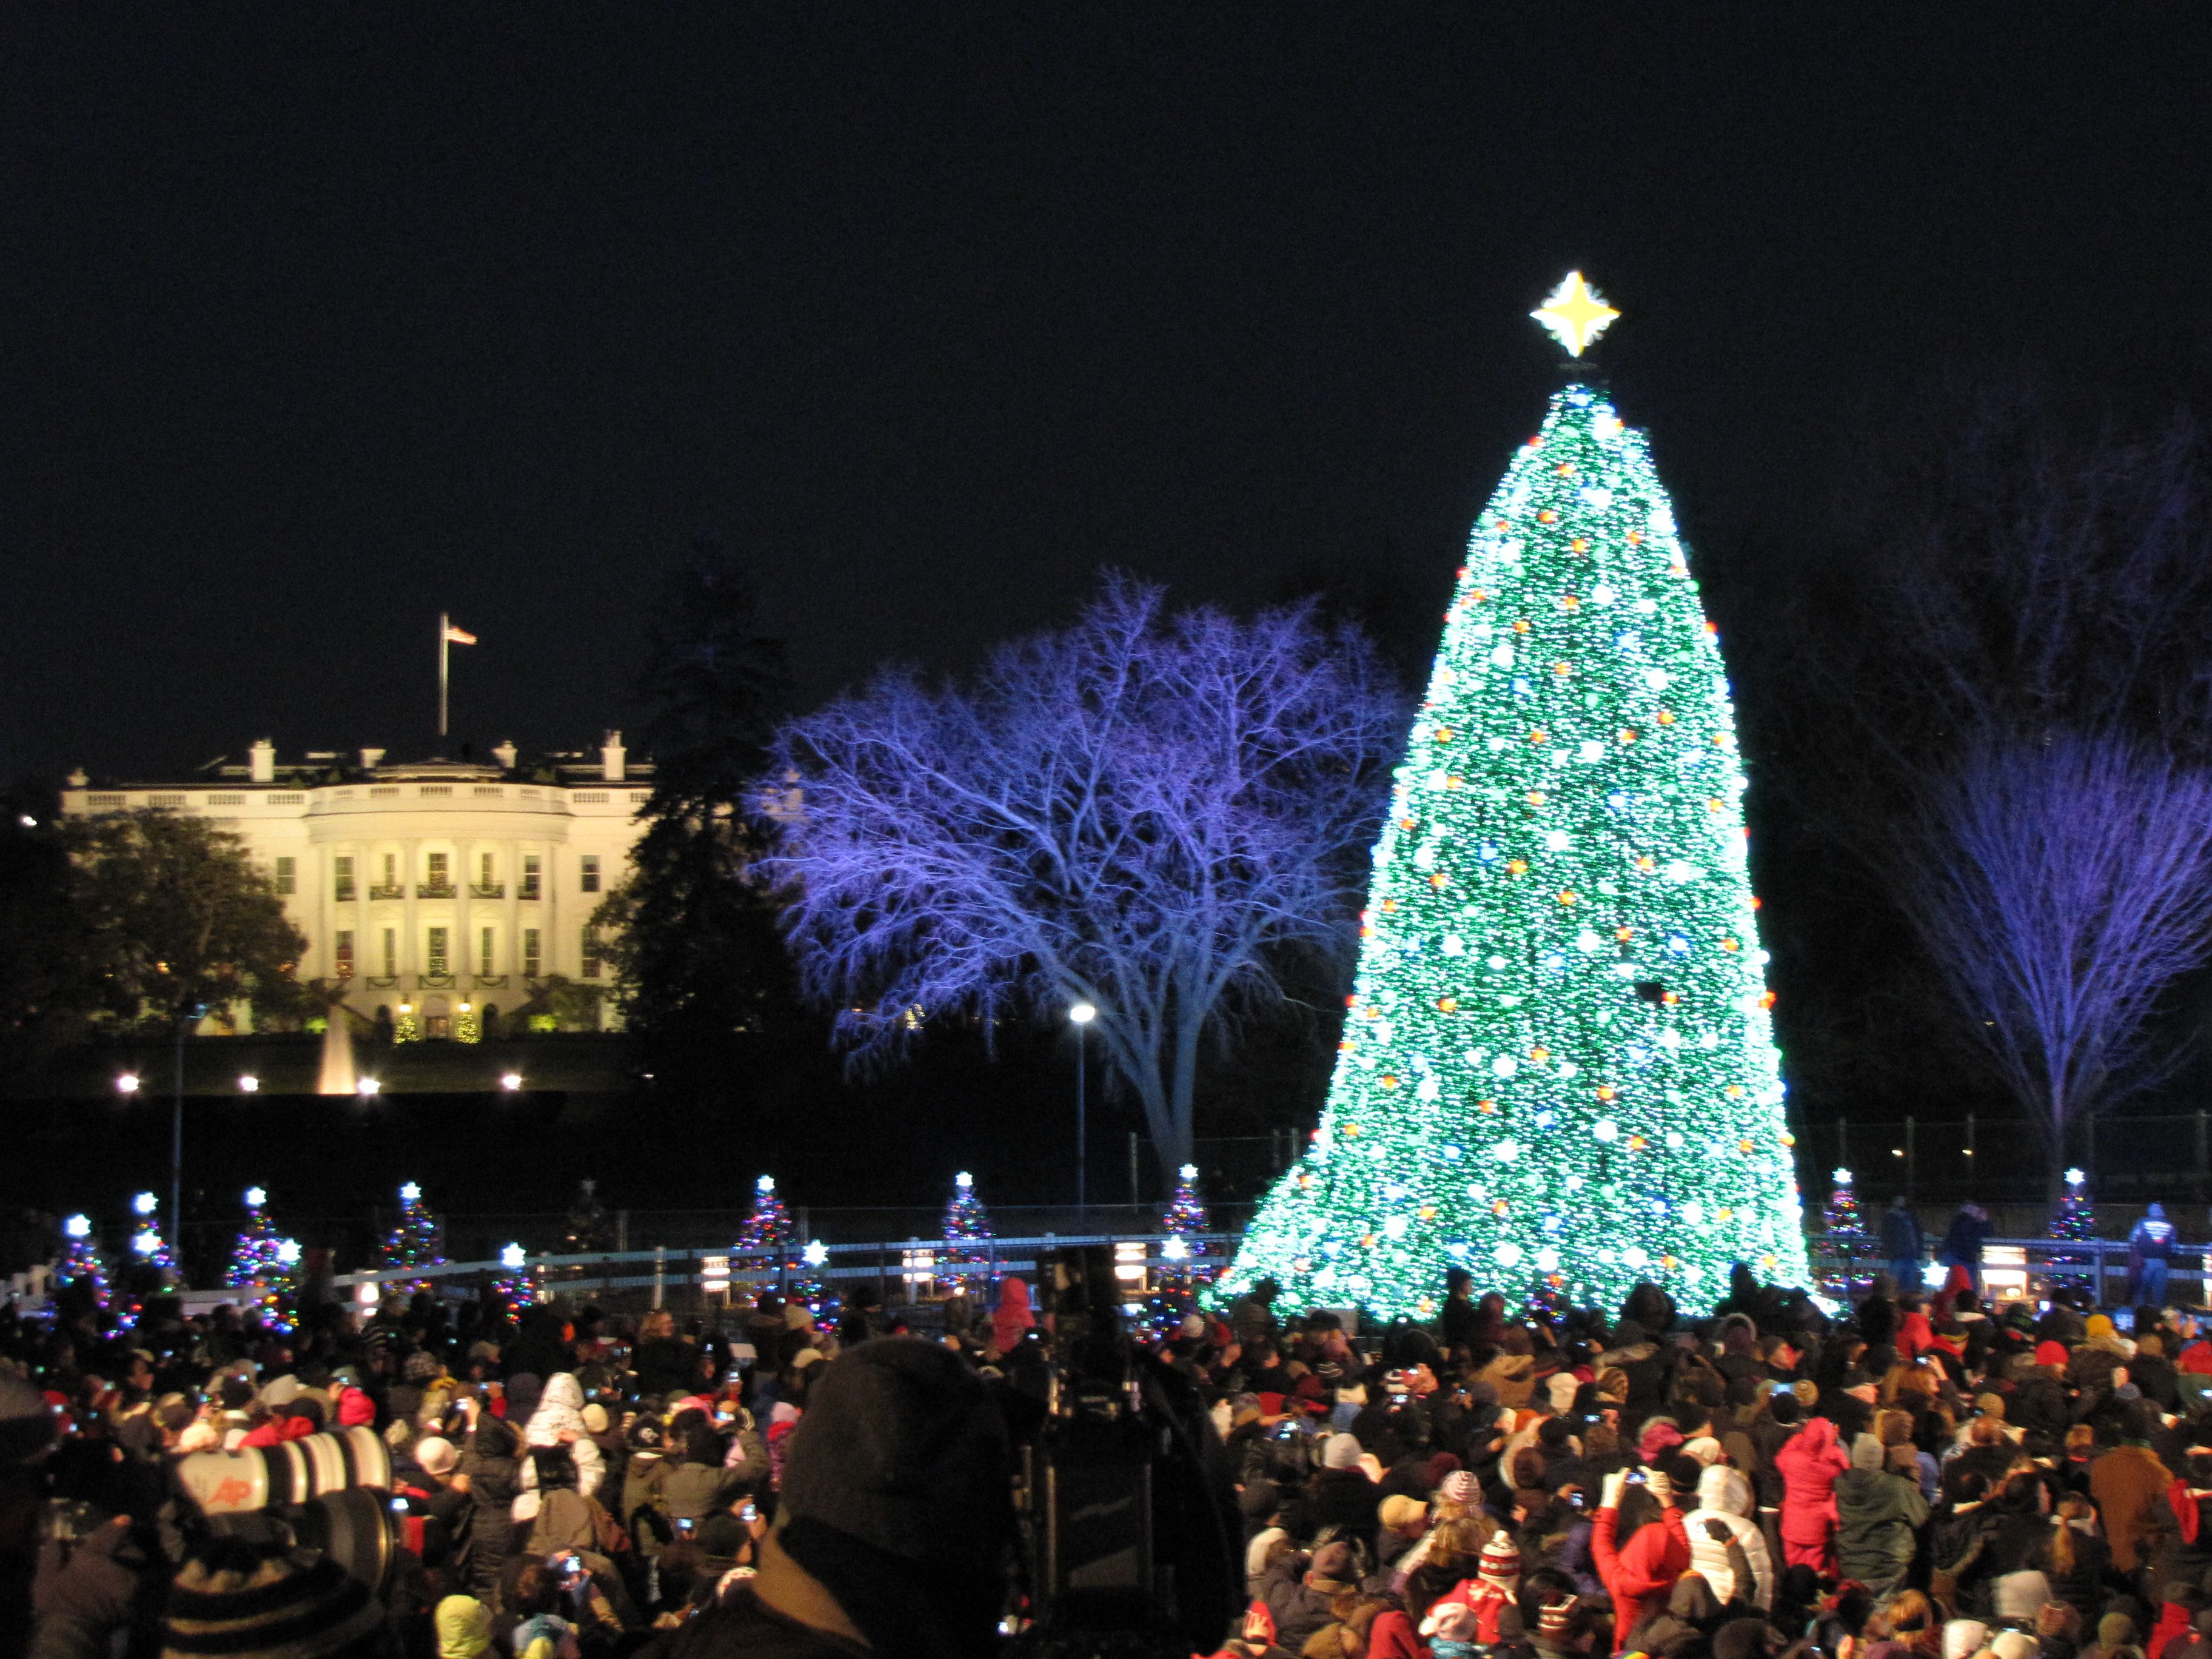 attend dozens of christmas tree lighting ceremonies near washington dc - Christmas Tree Lighting